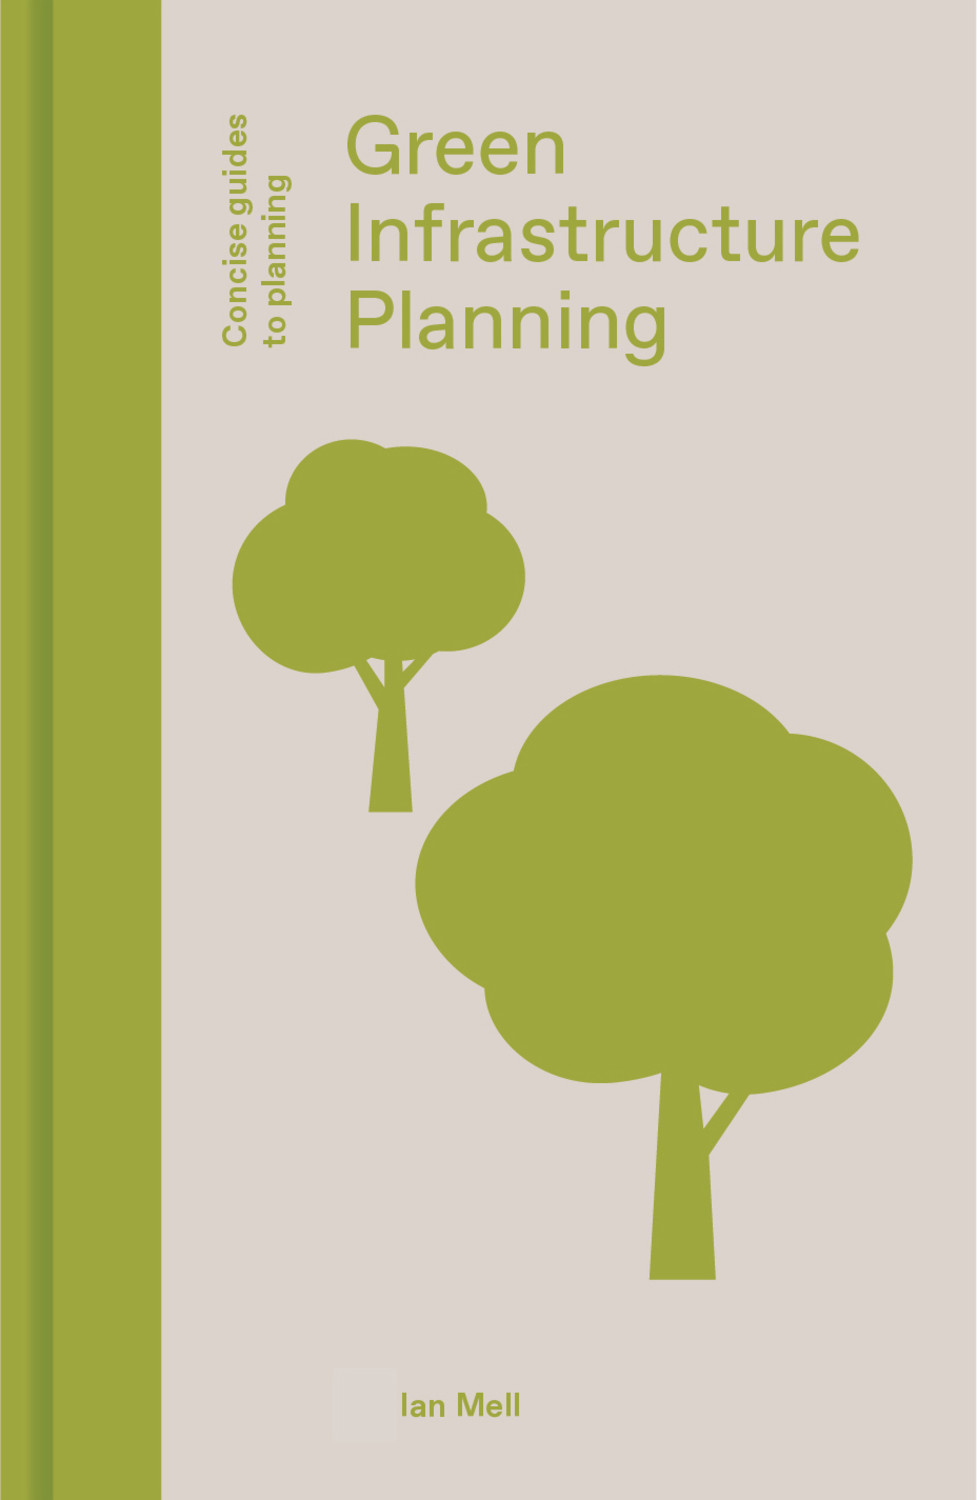 series Concise Guides to Planning – Lund Humphries f969d24c88e12